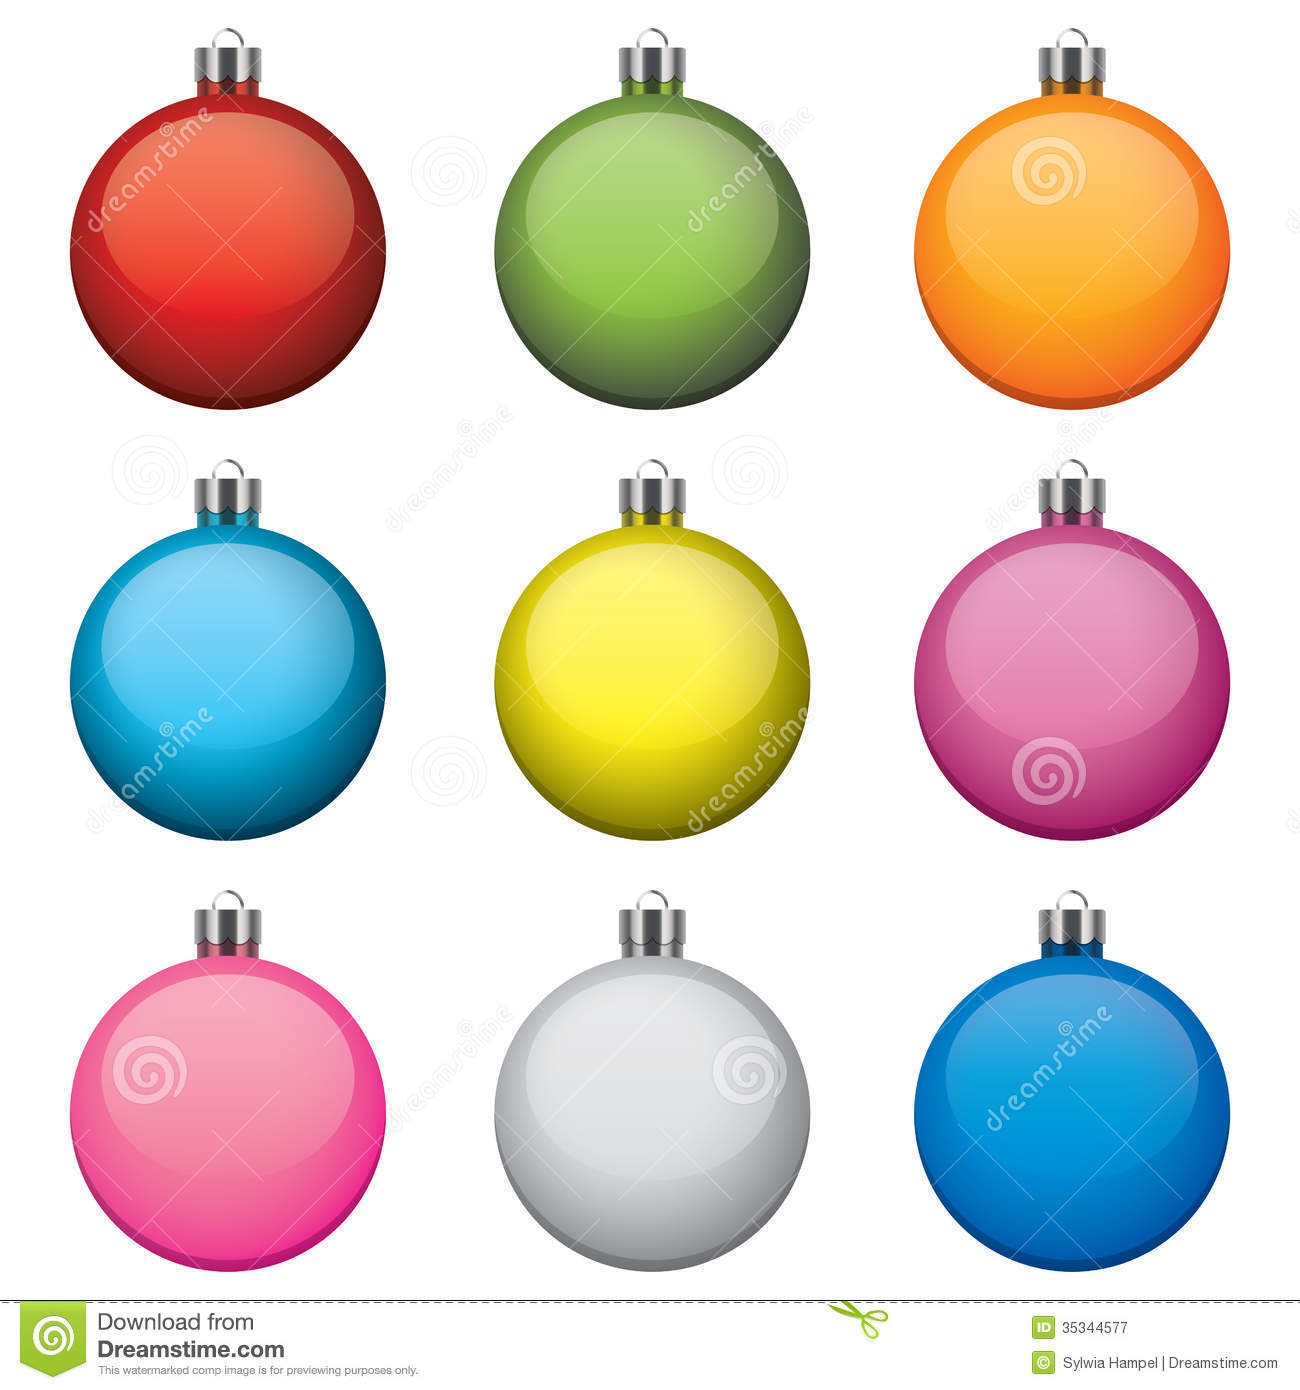 Christmas Baubles, Different Colors And Patterns, Royalty Free Stock ...